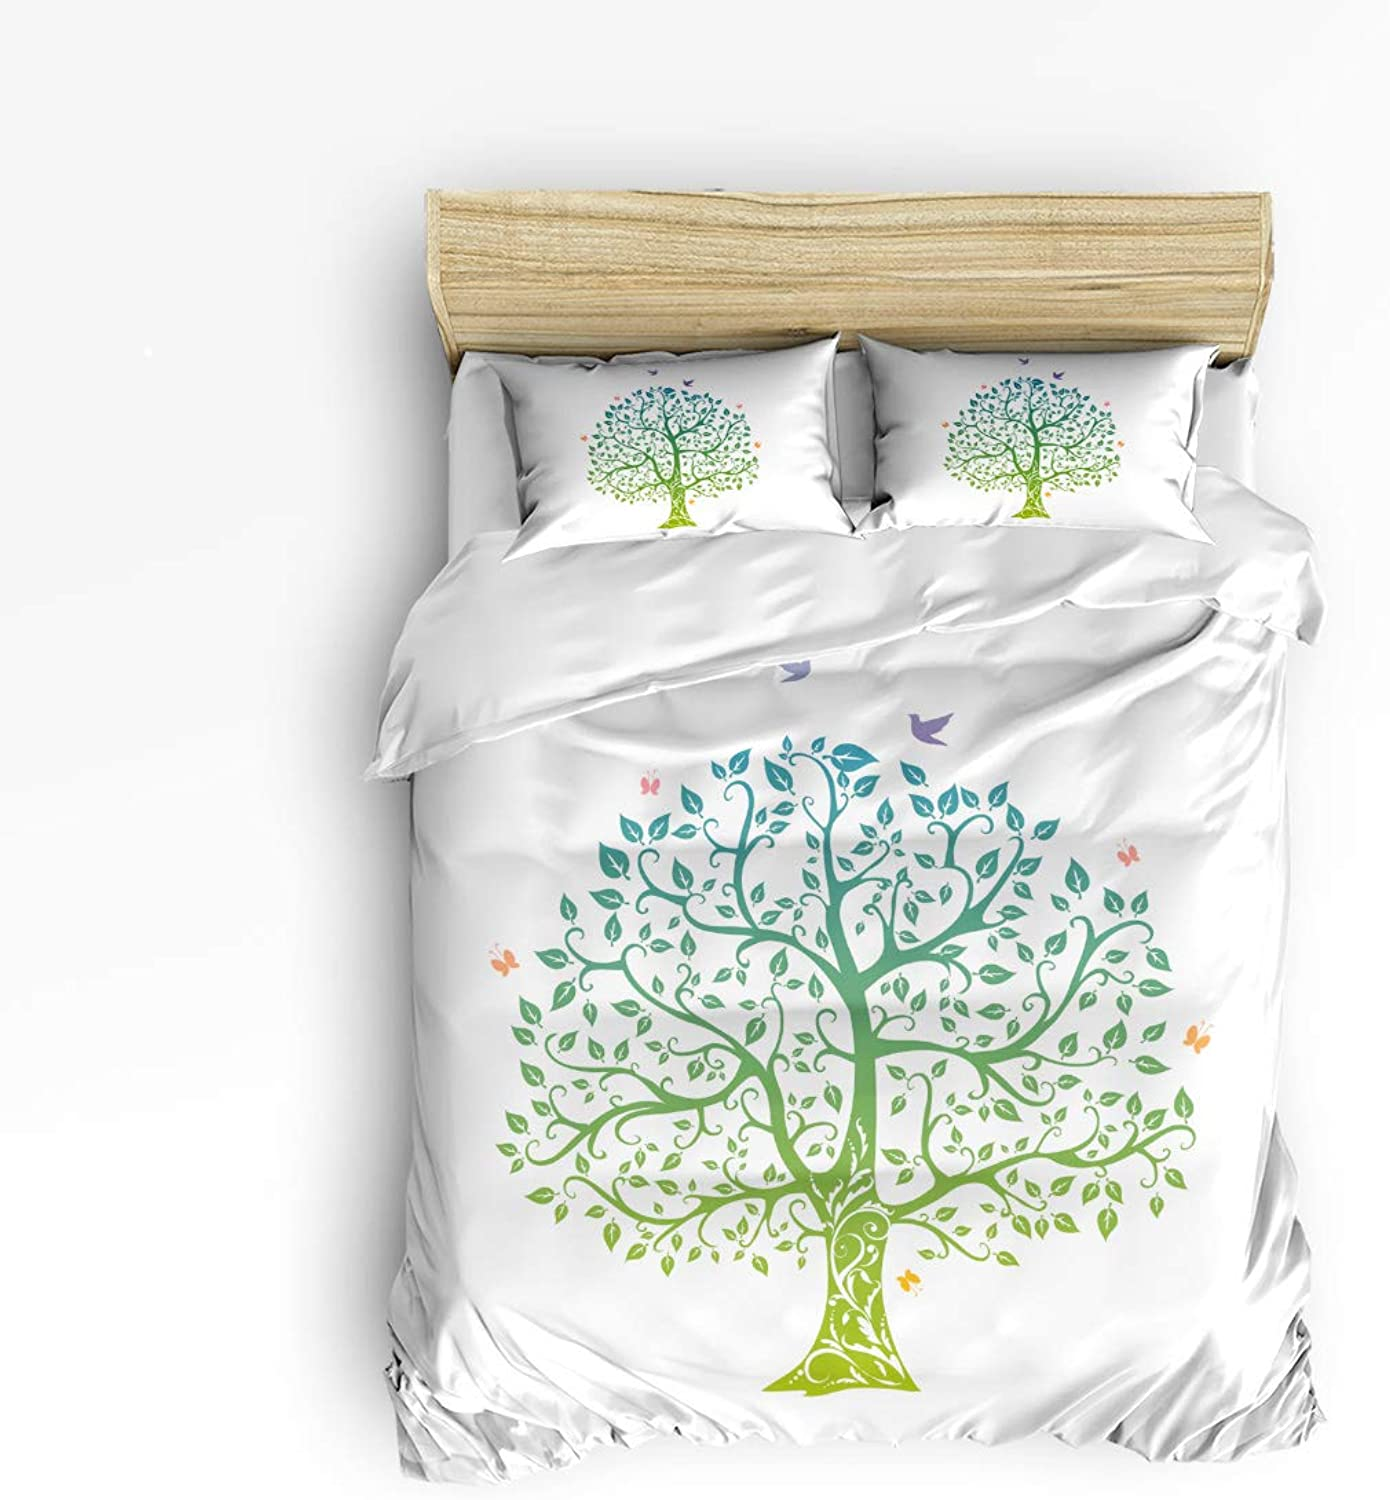 USOPHIA Full Size 4 Pieces Bed Sheets Set, Tree of Life Ornate Doodles Green Decorative 4 Pieces Bed Sheets Set,